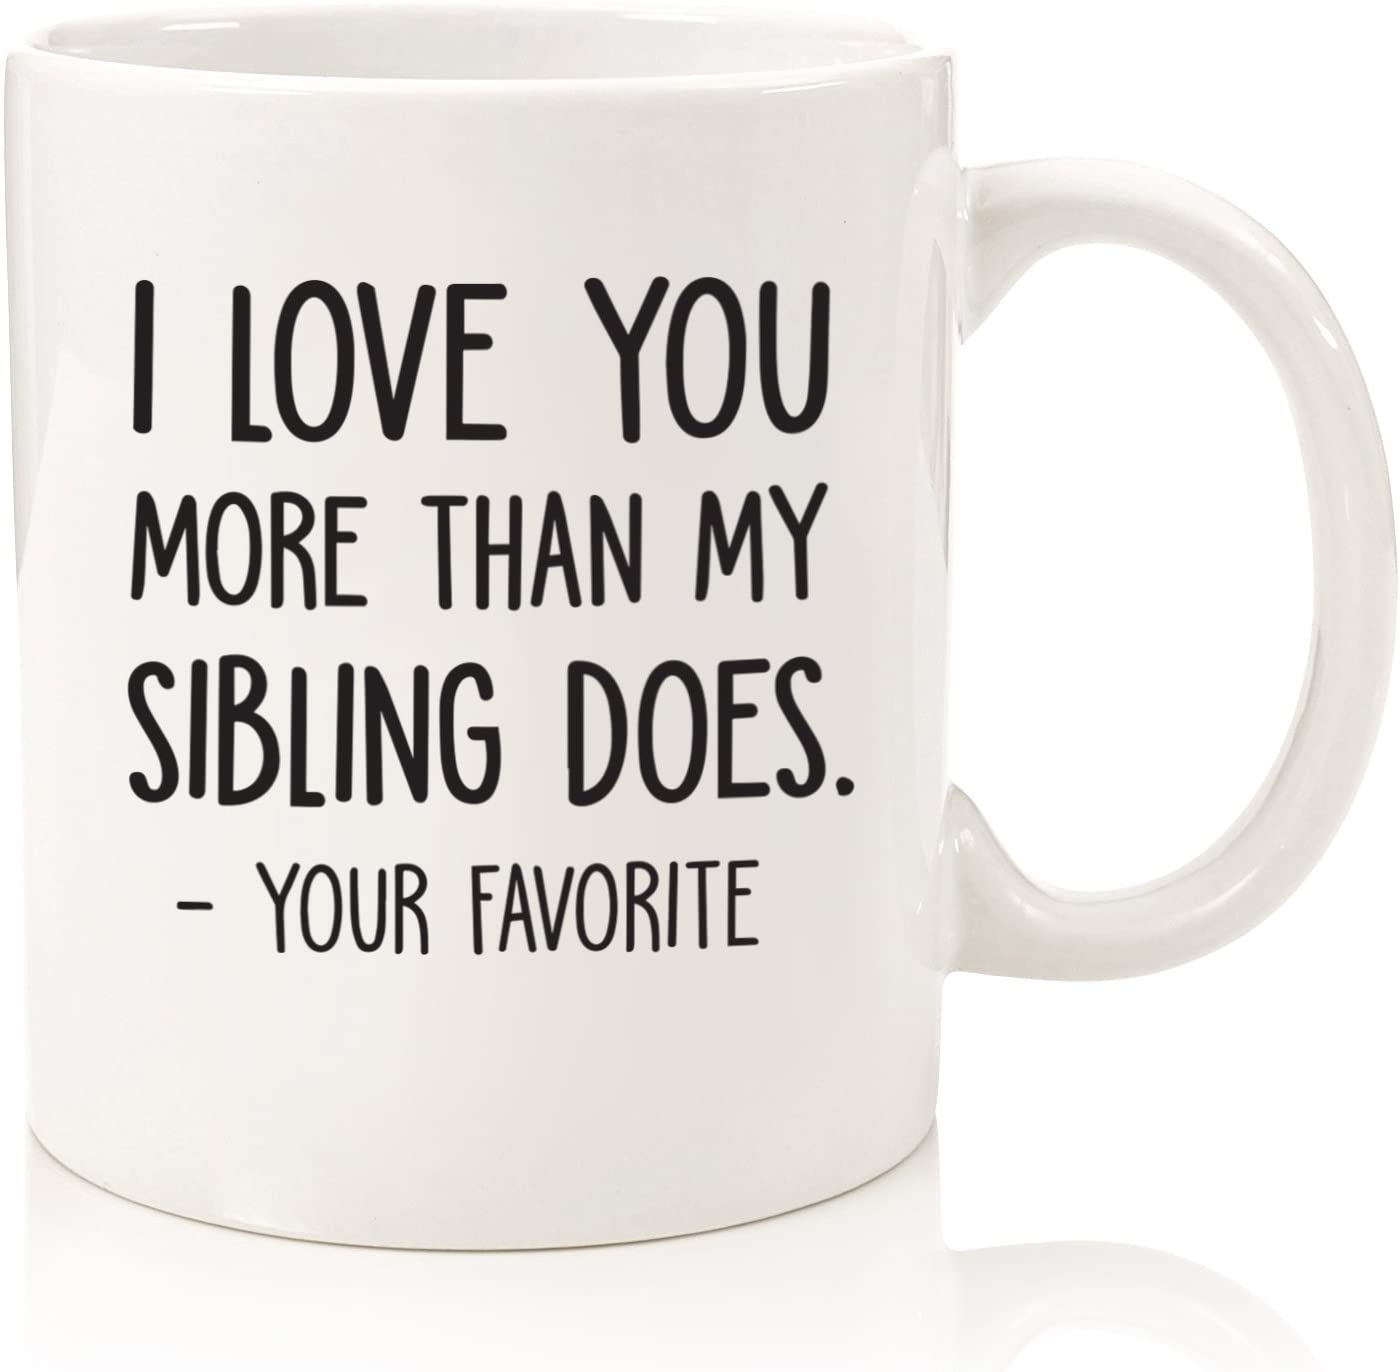 I Love You More : Your Favorite Funny Coffee Mug - Best Mom & Dad Valentines Day Gifts - Gag Gift from Daughter, Son, Kids - Novelty Birthday Present Idea for Parents- Fun Cup for Men, Women, Him, Her